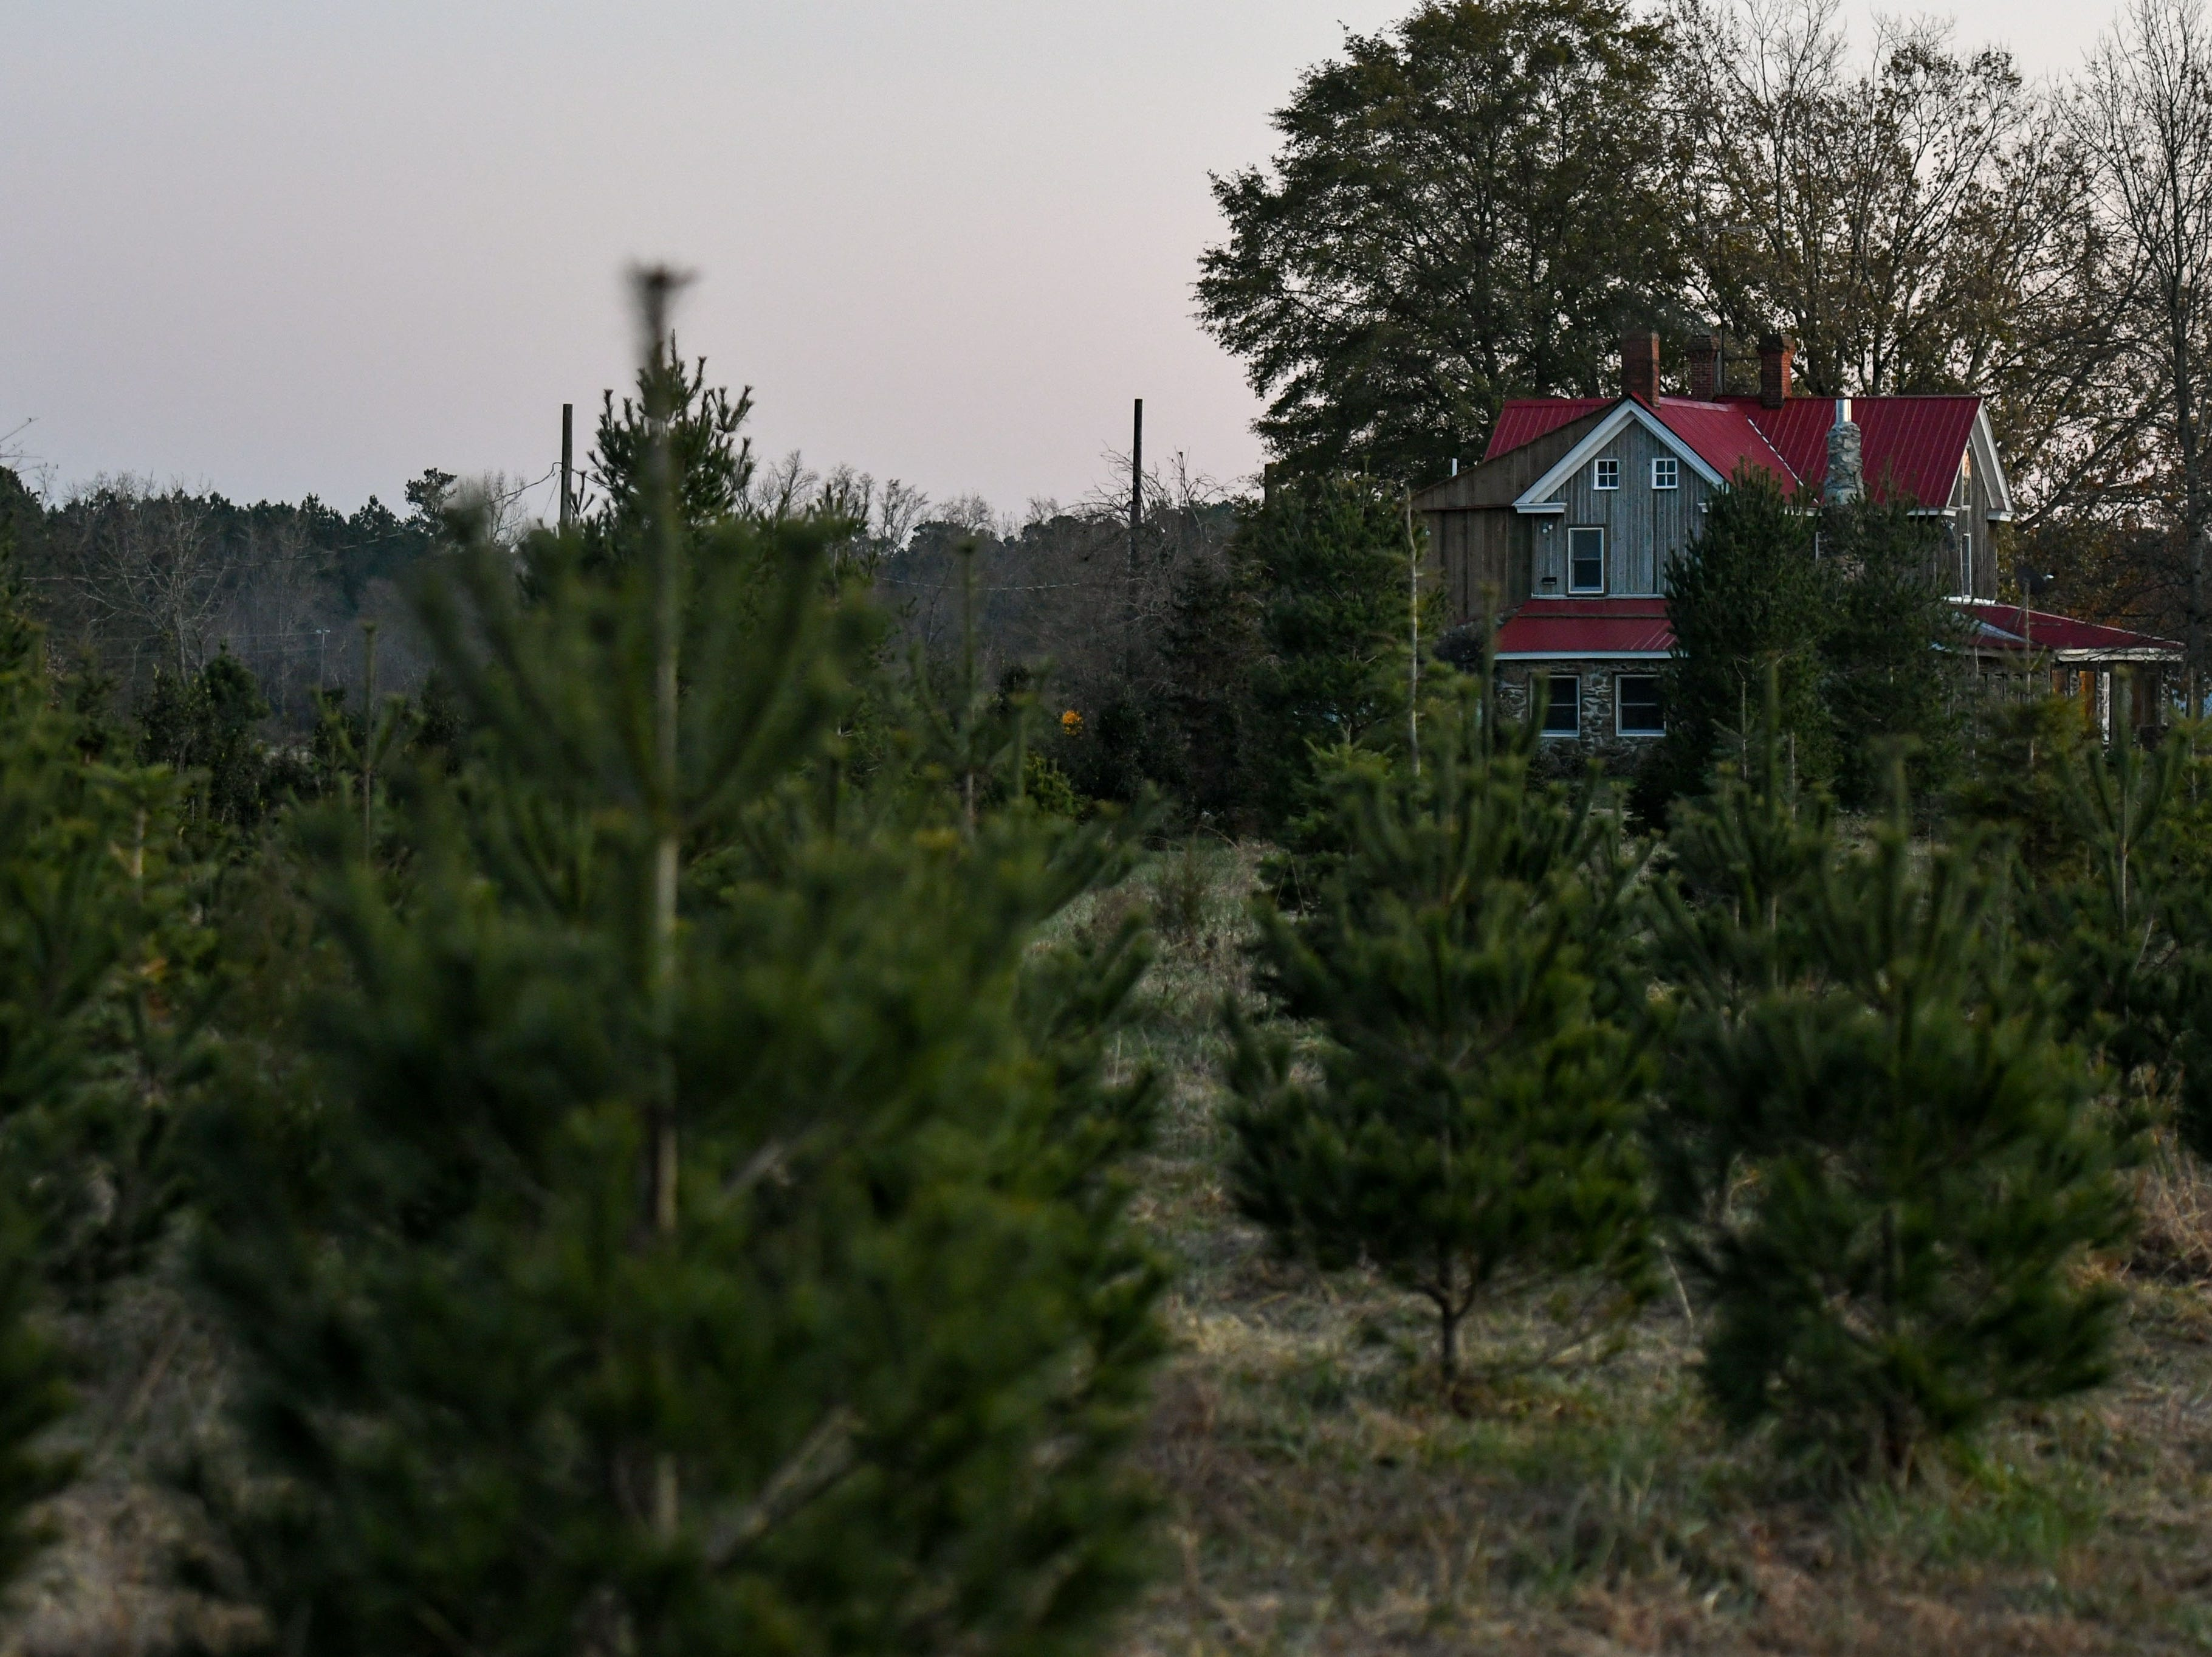 Christmas trees sit ready to be chosen on Nichols Tree Farm in Hebron on Thursday, Nov 30, 2018.